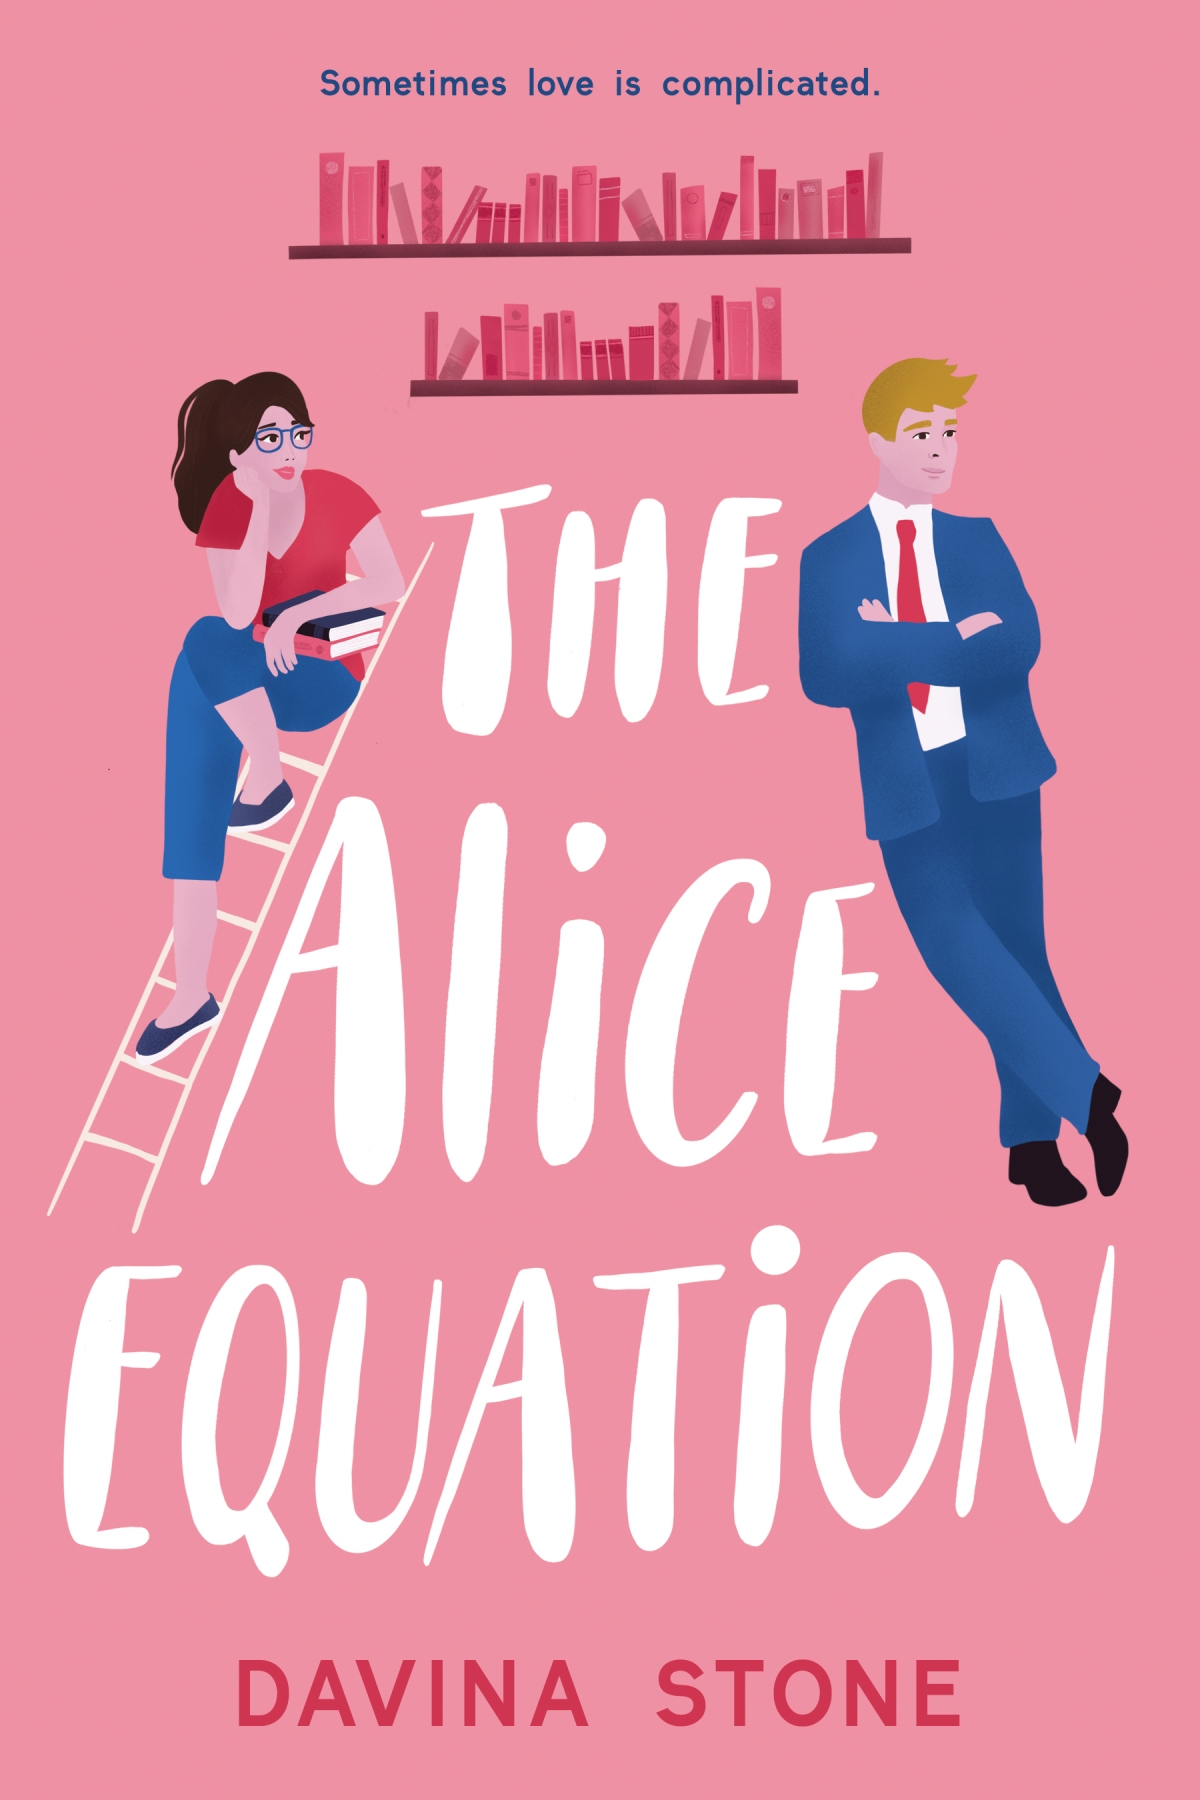 Meet Davina Stone whose book The Alice Equation is launches today!